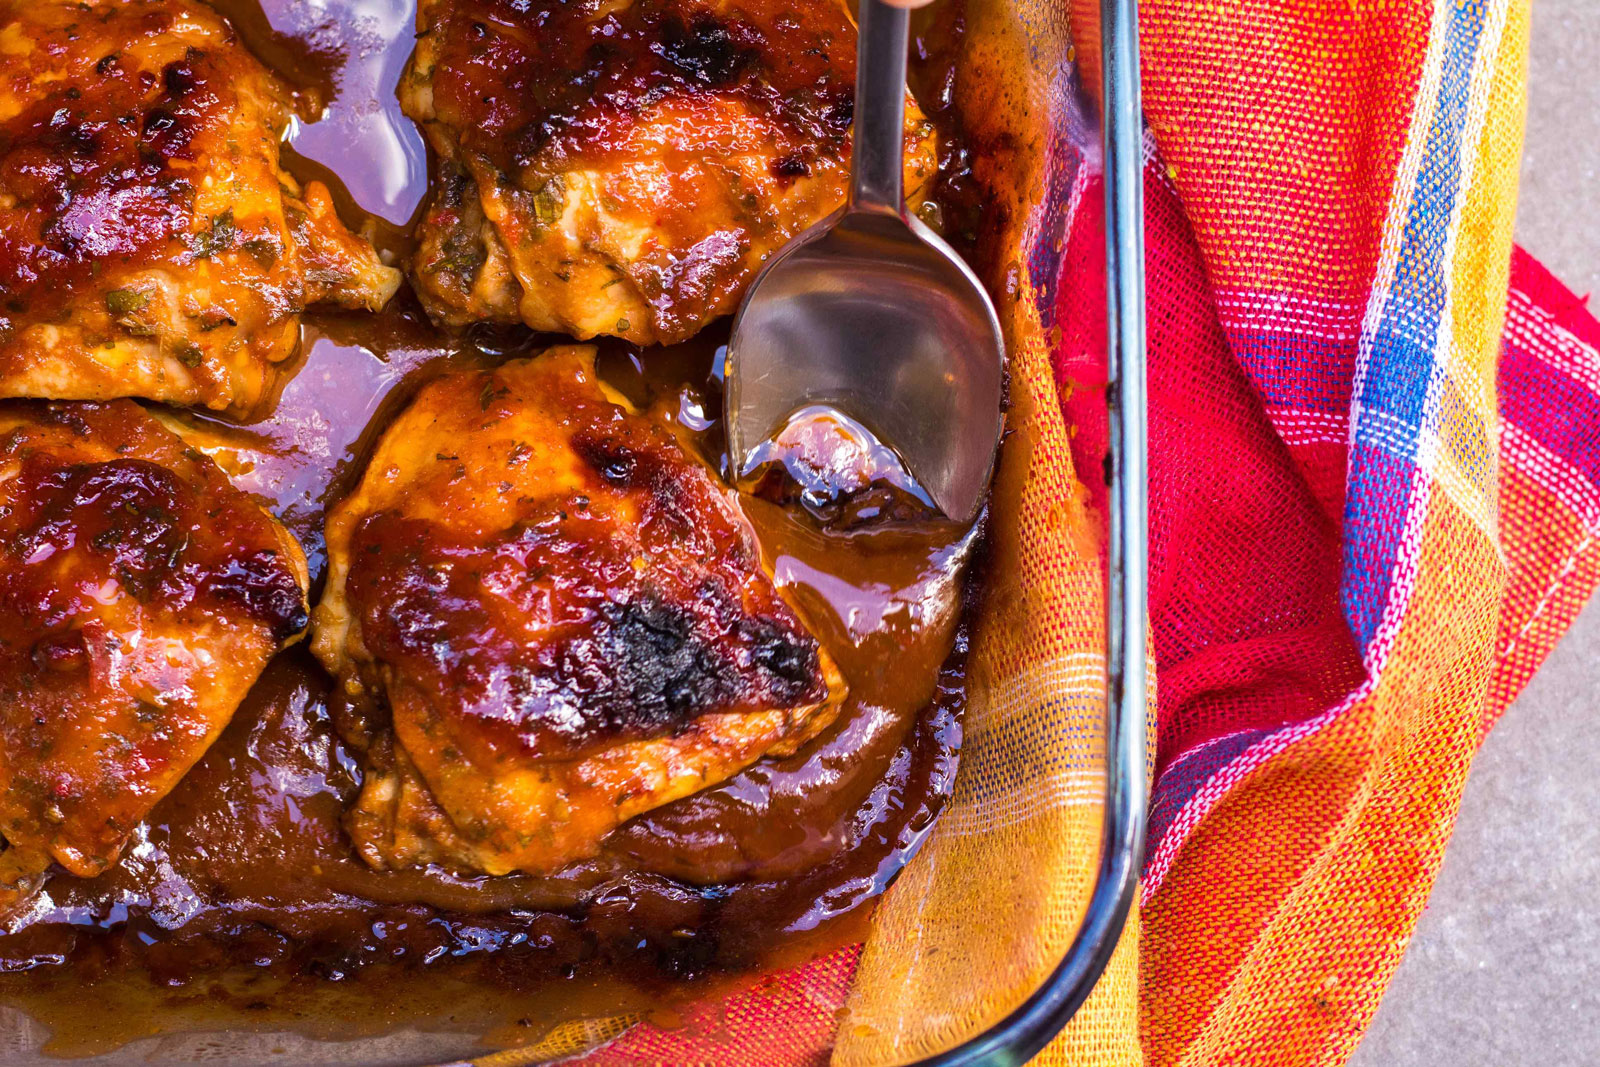 Baked BBQ chicken with homemade BBQ sauce